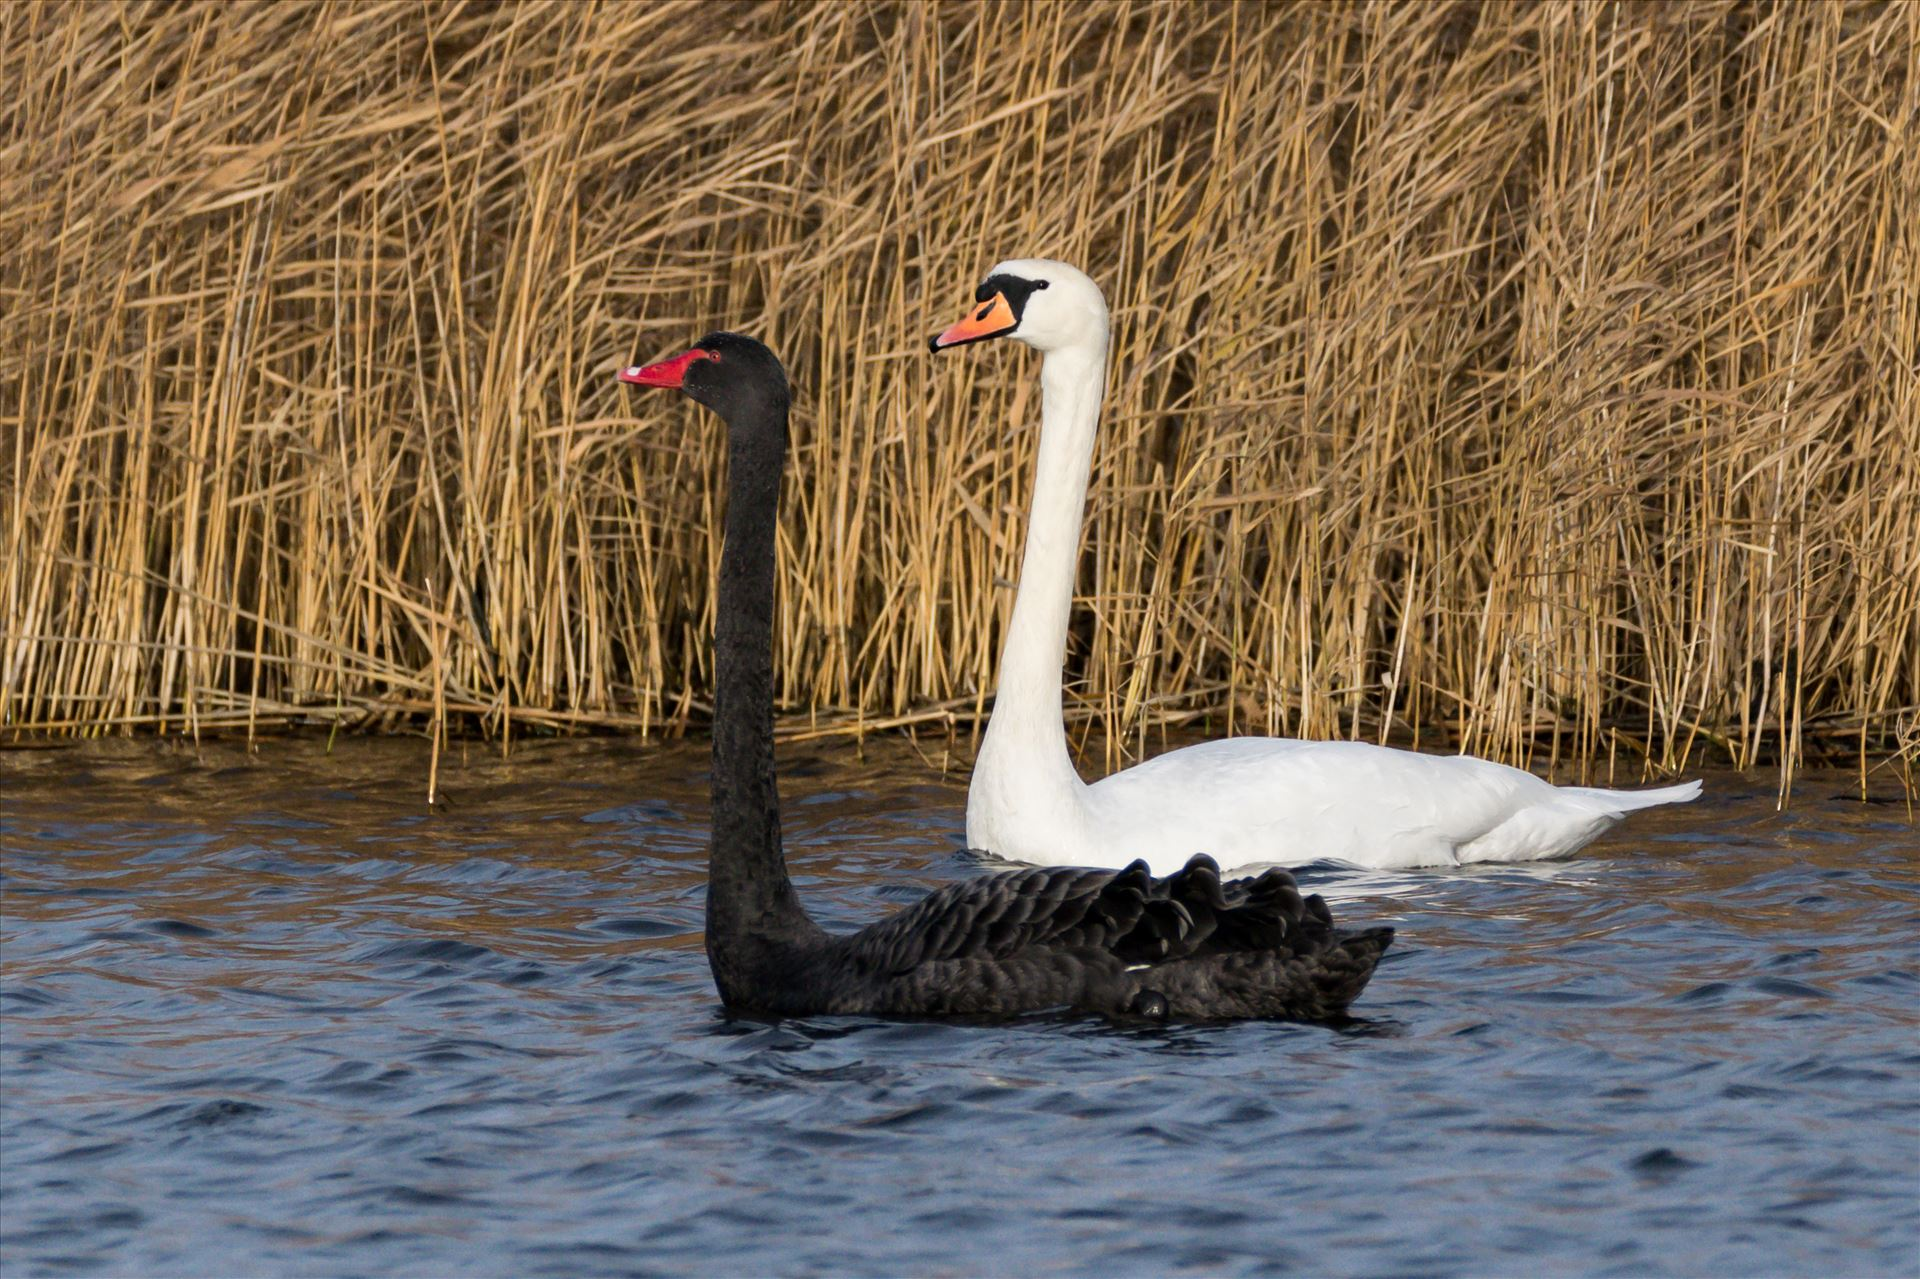 Black and White Swan RSPB Saltholme - Black and White Swans, hardly ever see them together, taken at RSPB Saltholme by AJ Stoves Photography